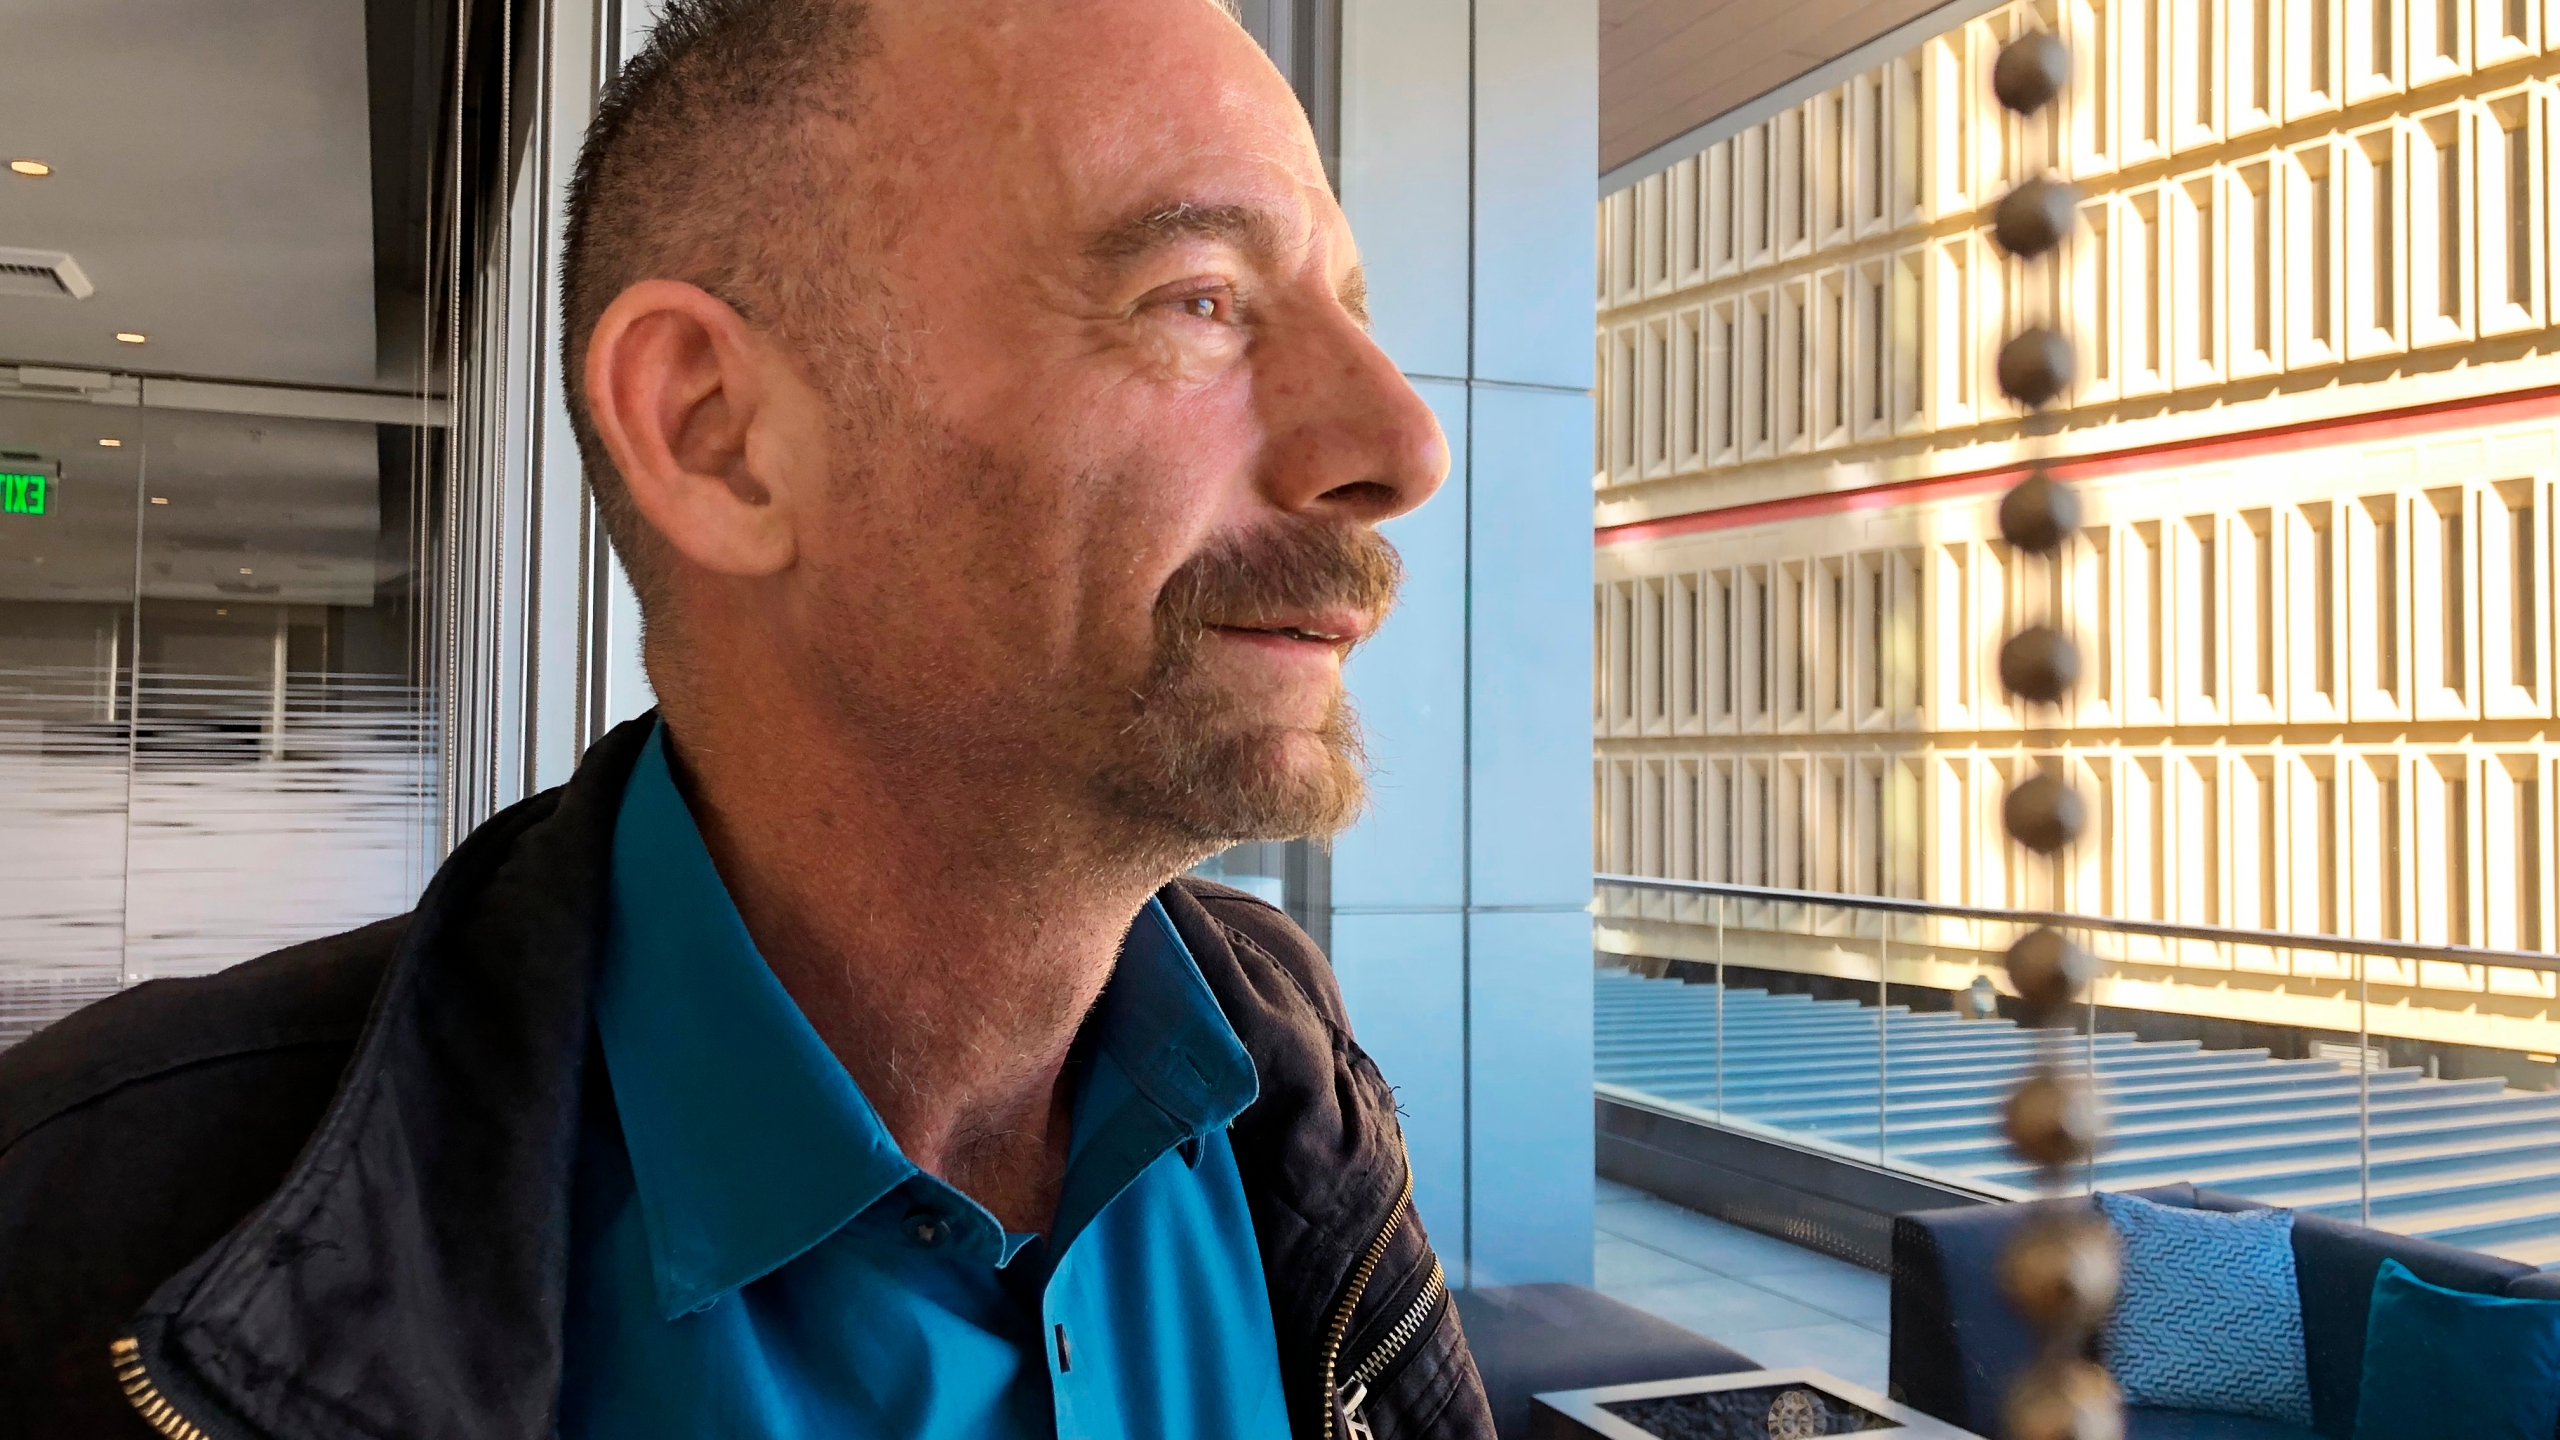 FILE - This March 4, 2019, file photo shows Timothy Ray Brown, nicknamed the Berlin patient, posed in Seattle. A Brazilian man who was infected with the AIDS virus has shown no sign of it for more than a year since he stopped HIV medicines after an intense drug therapy aimed at purging hidden, dormant virus from his body, doctors are reporting. If confirmed, this would be the first time HIV has been eliminated without a bone marrow or stem cell transplant like the ones that have cured two other men, nicknamed the Berlin and London patients for where they were treated. (AP Photo/Manuel Valdes, File)